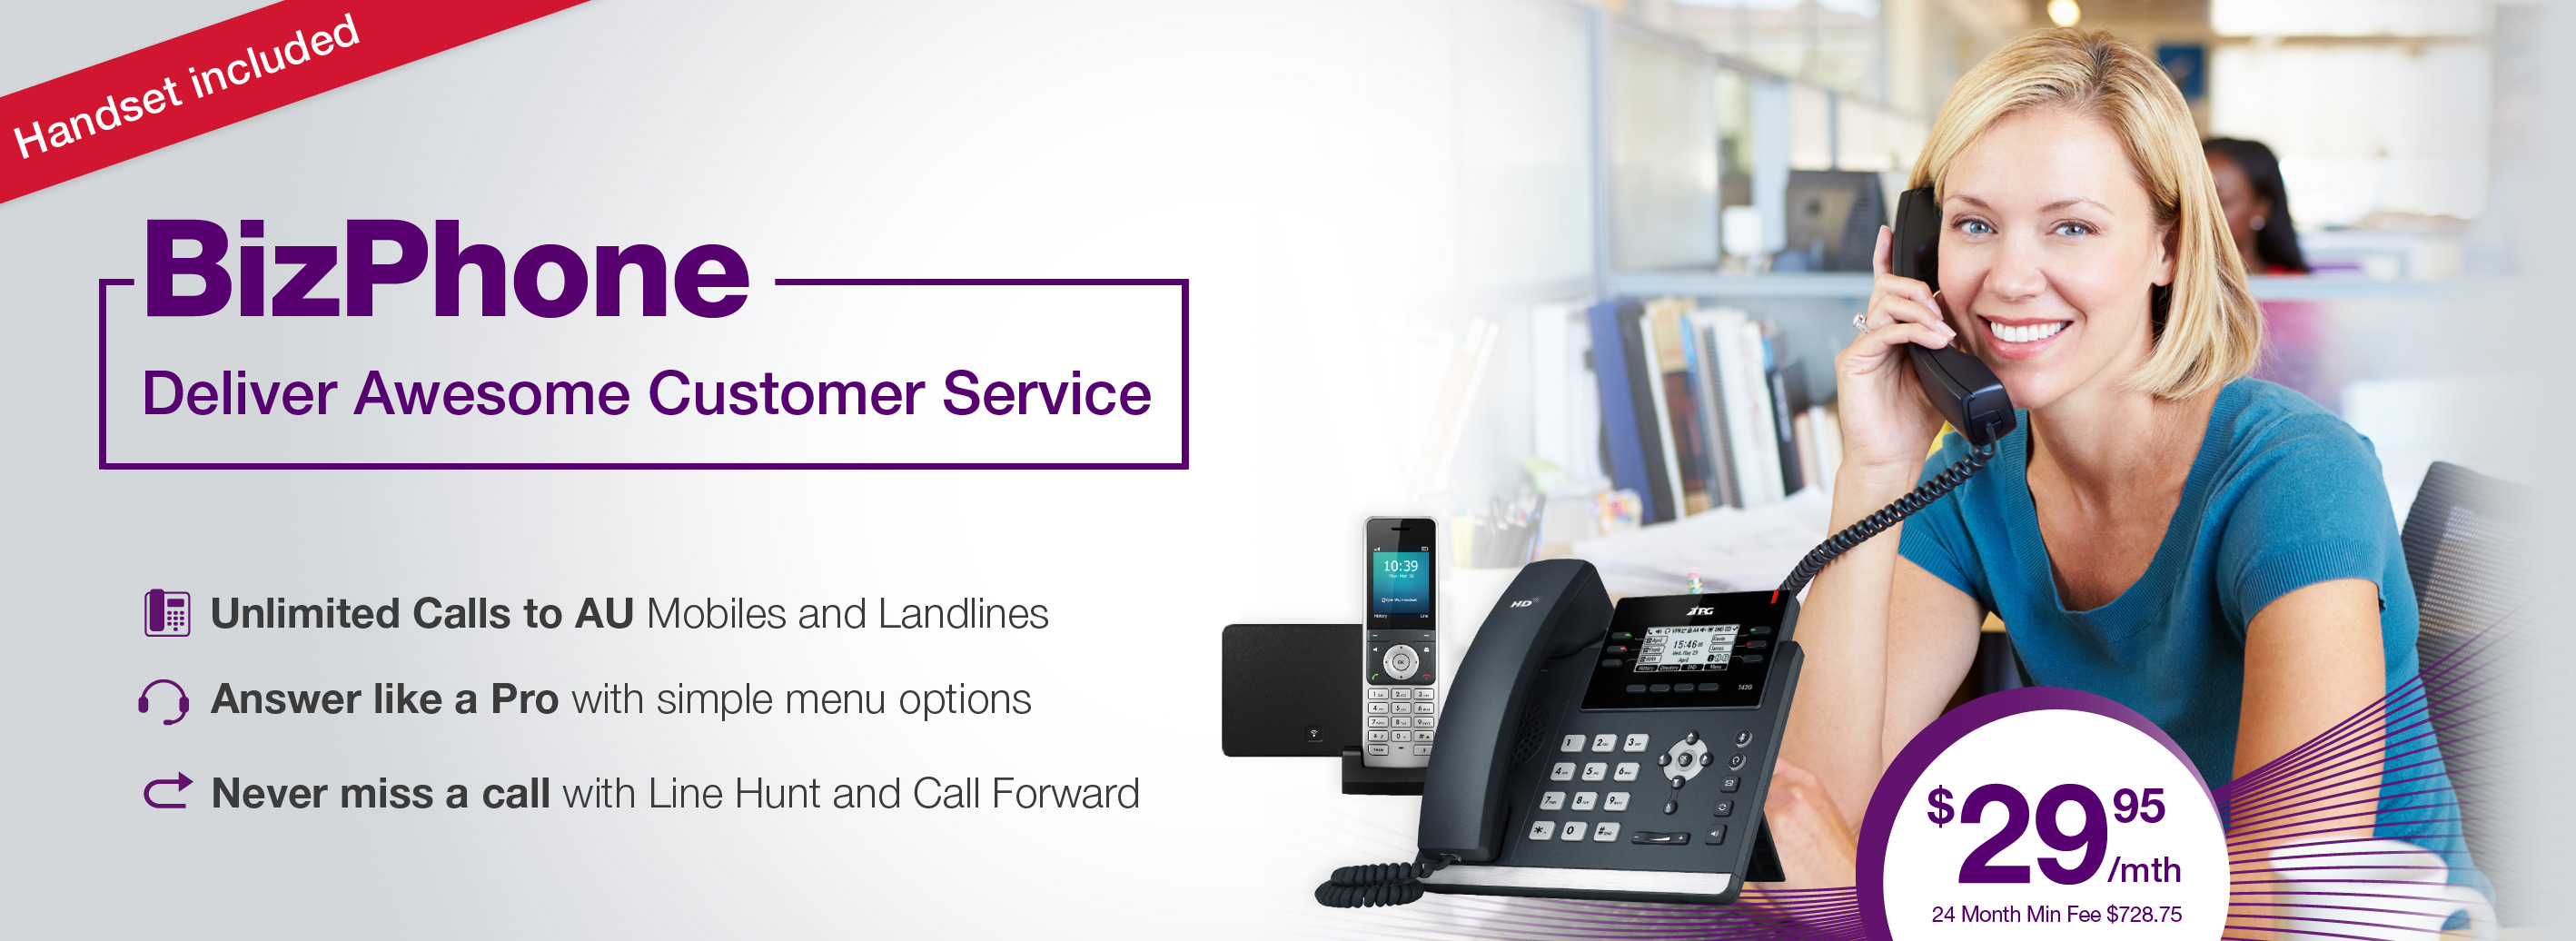 TPG Bizphone | VoiP for Business with Included Calls